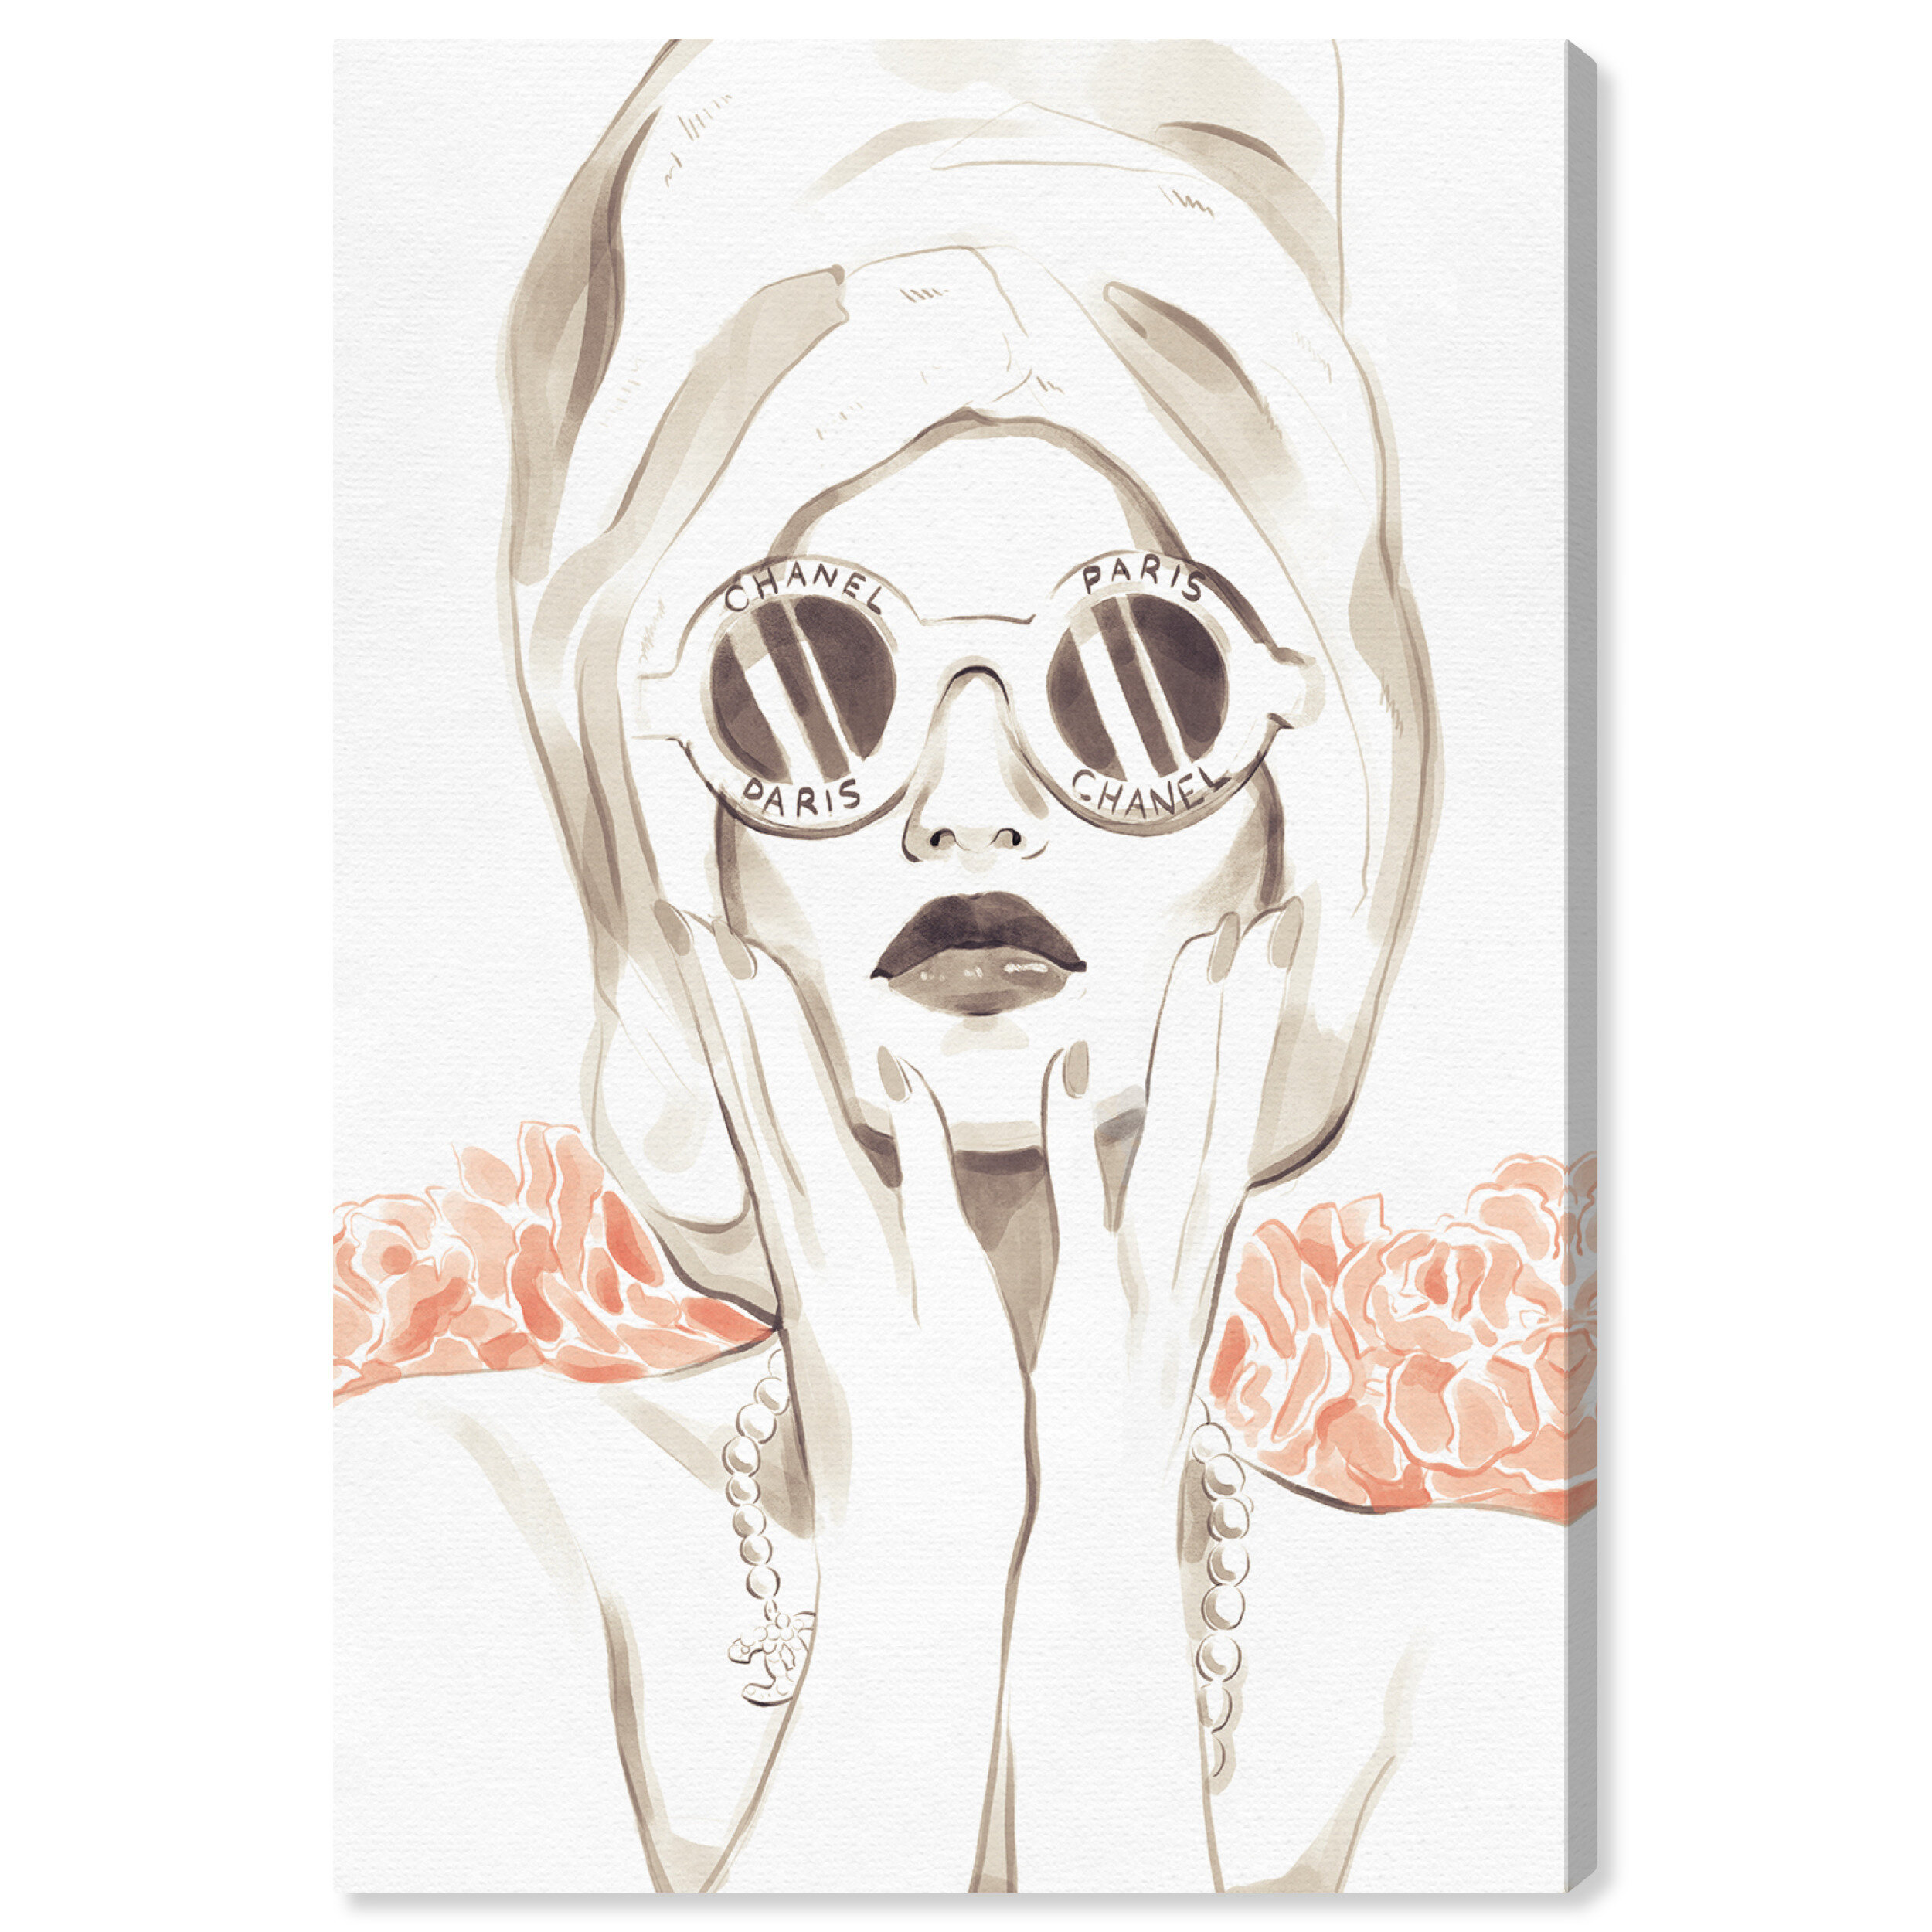 House Of Hampton Bath Bomb Beauty By Oliver Gal Graphic Art Print On Canvas Reviews Wayfair